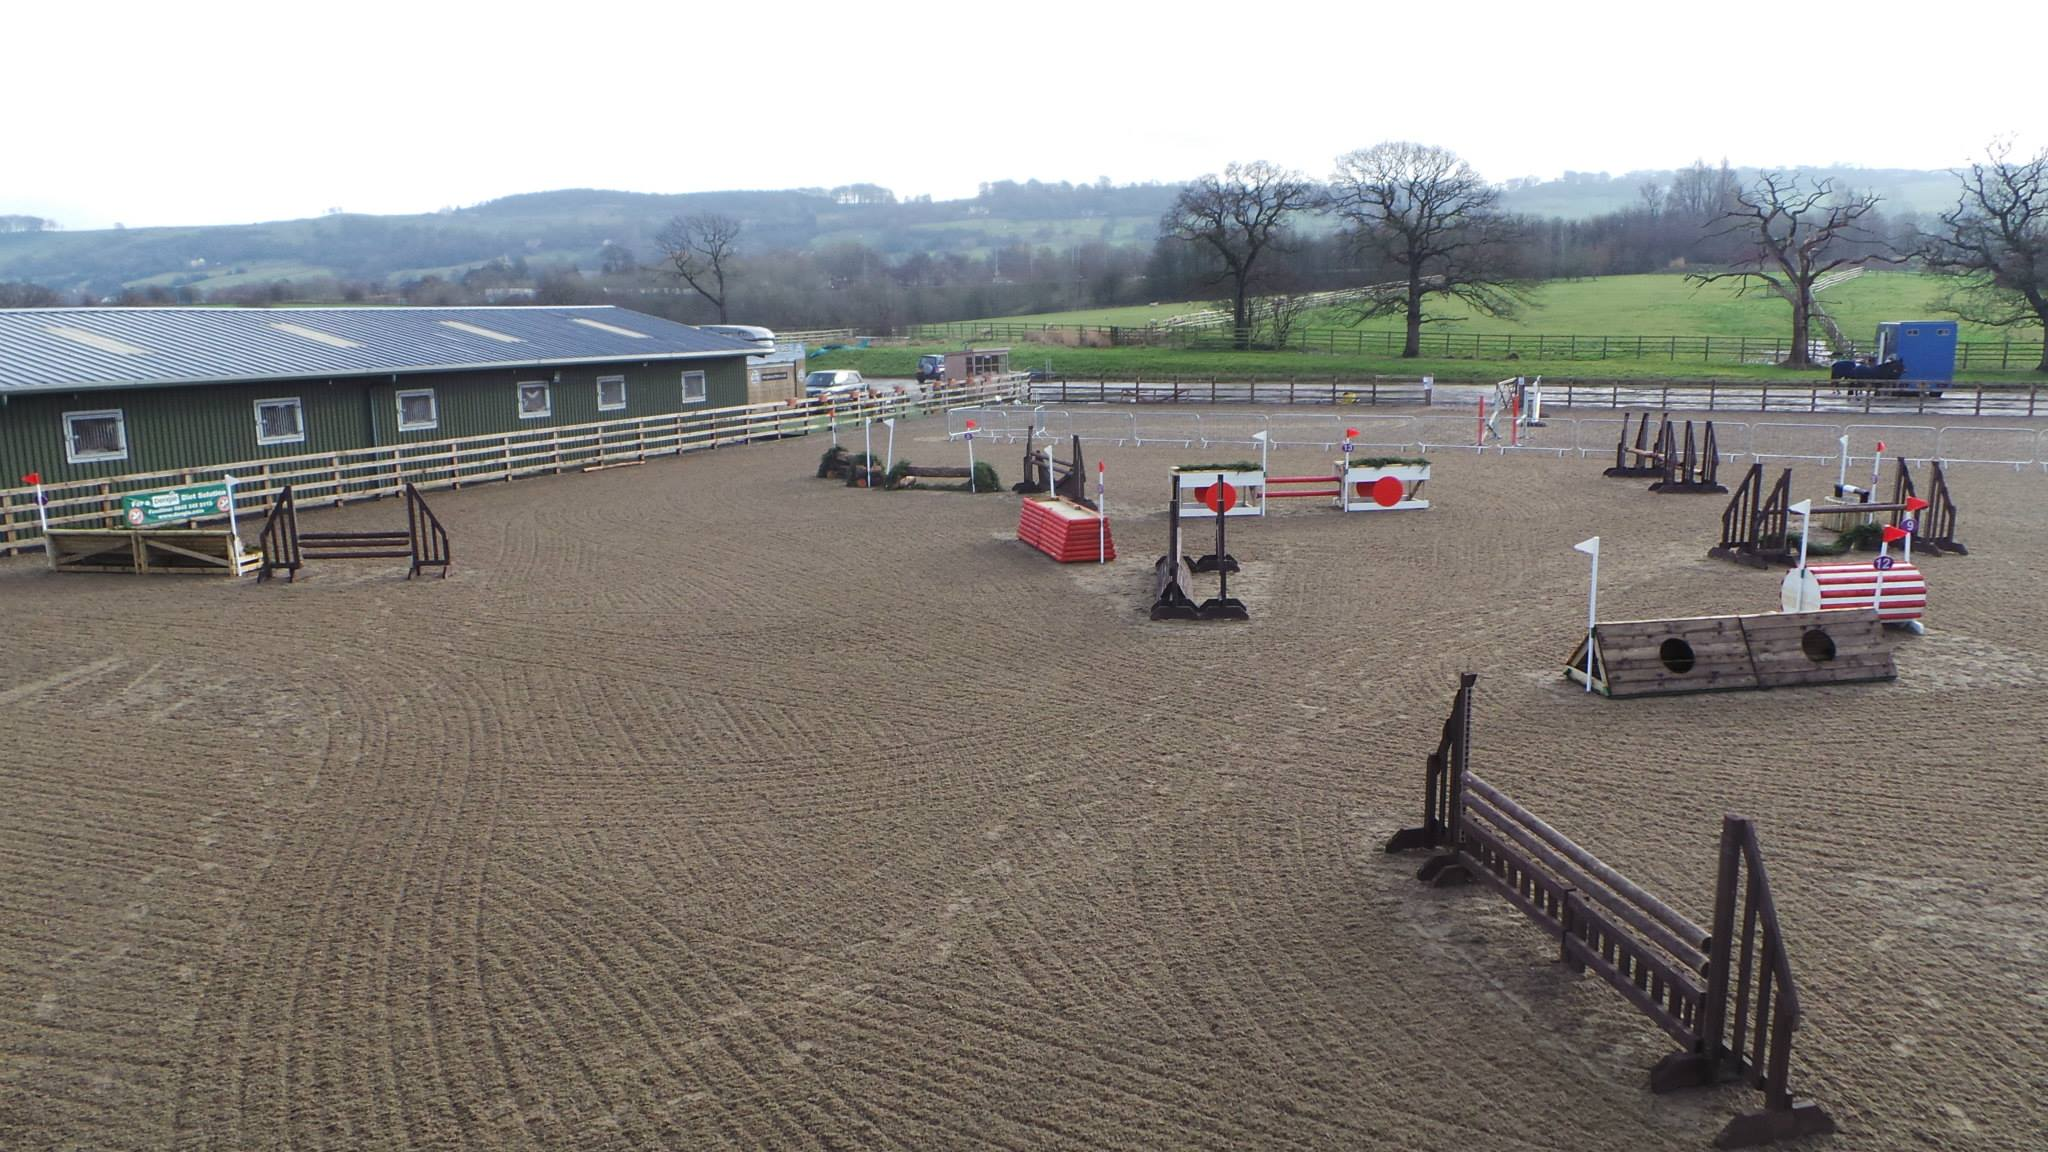 northcote stud - Grub's Sponsor Arena Eventing Series at Northcote Stud Equestrian Centre